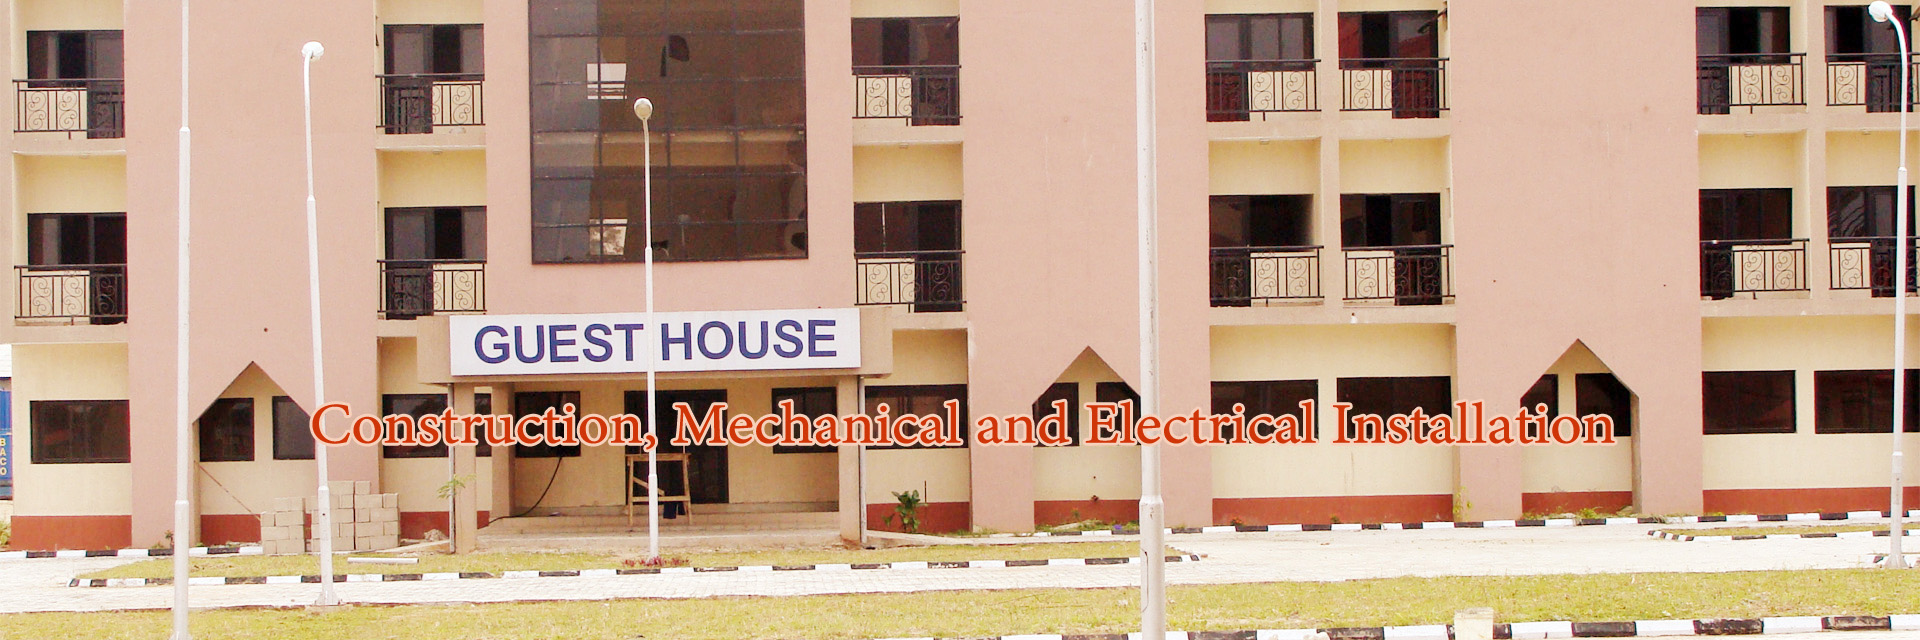 Building Construction, Mechanical and Electrical Installation